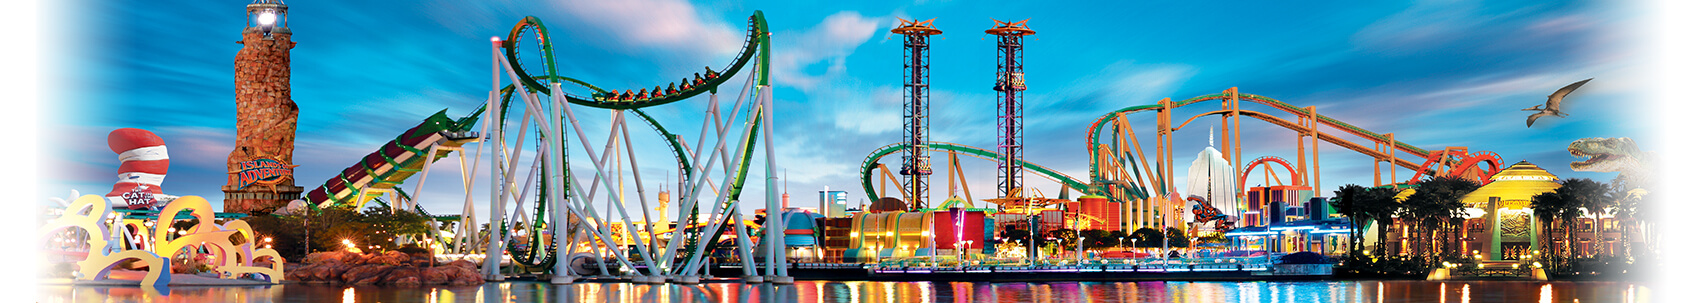 Orlando theme parks and attractions